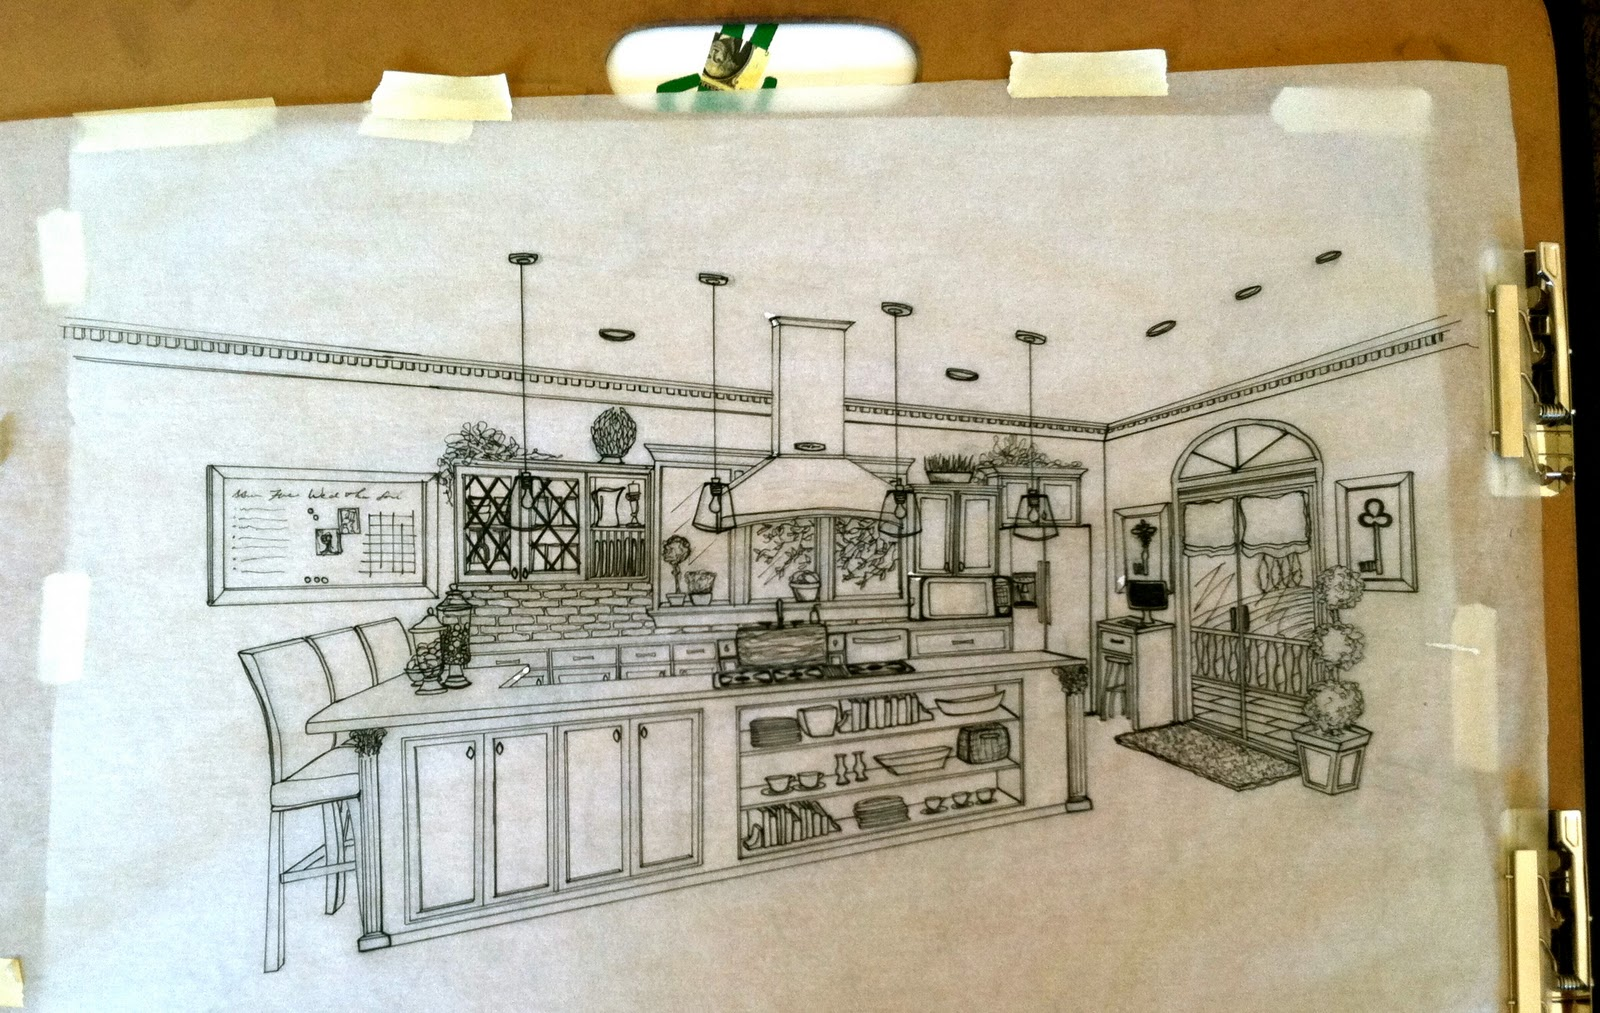 Kitchen perspective drawing - Perspective Drawing Kitchen